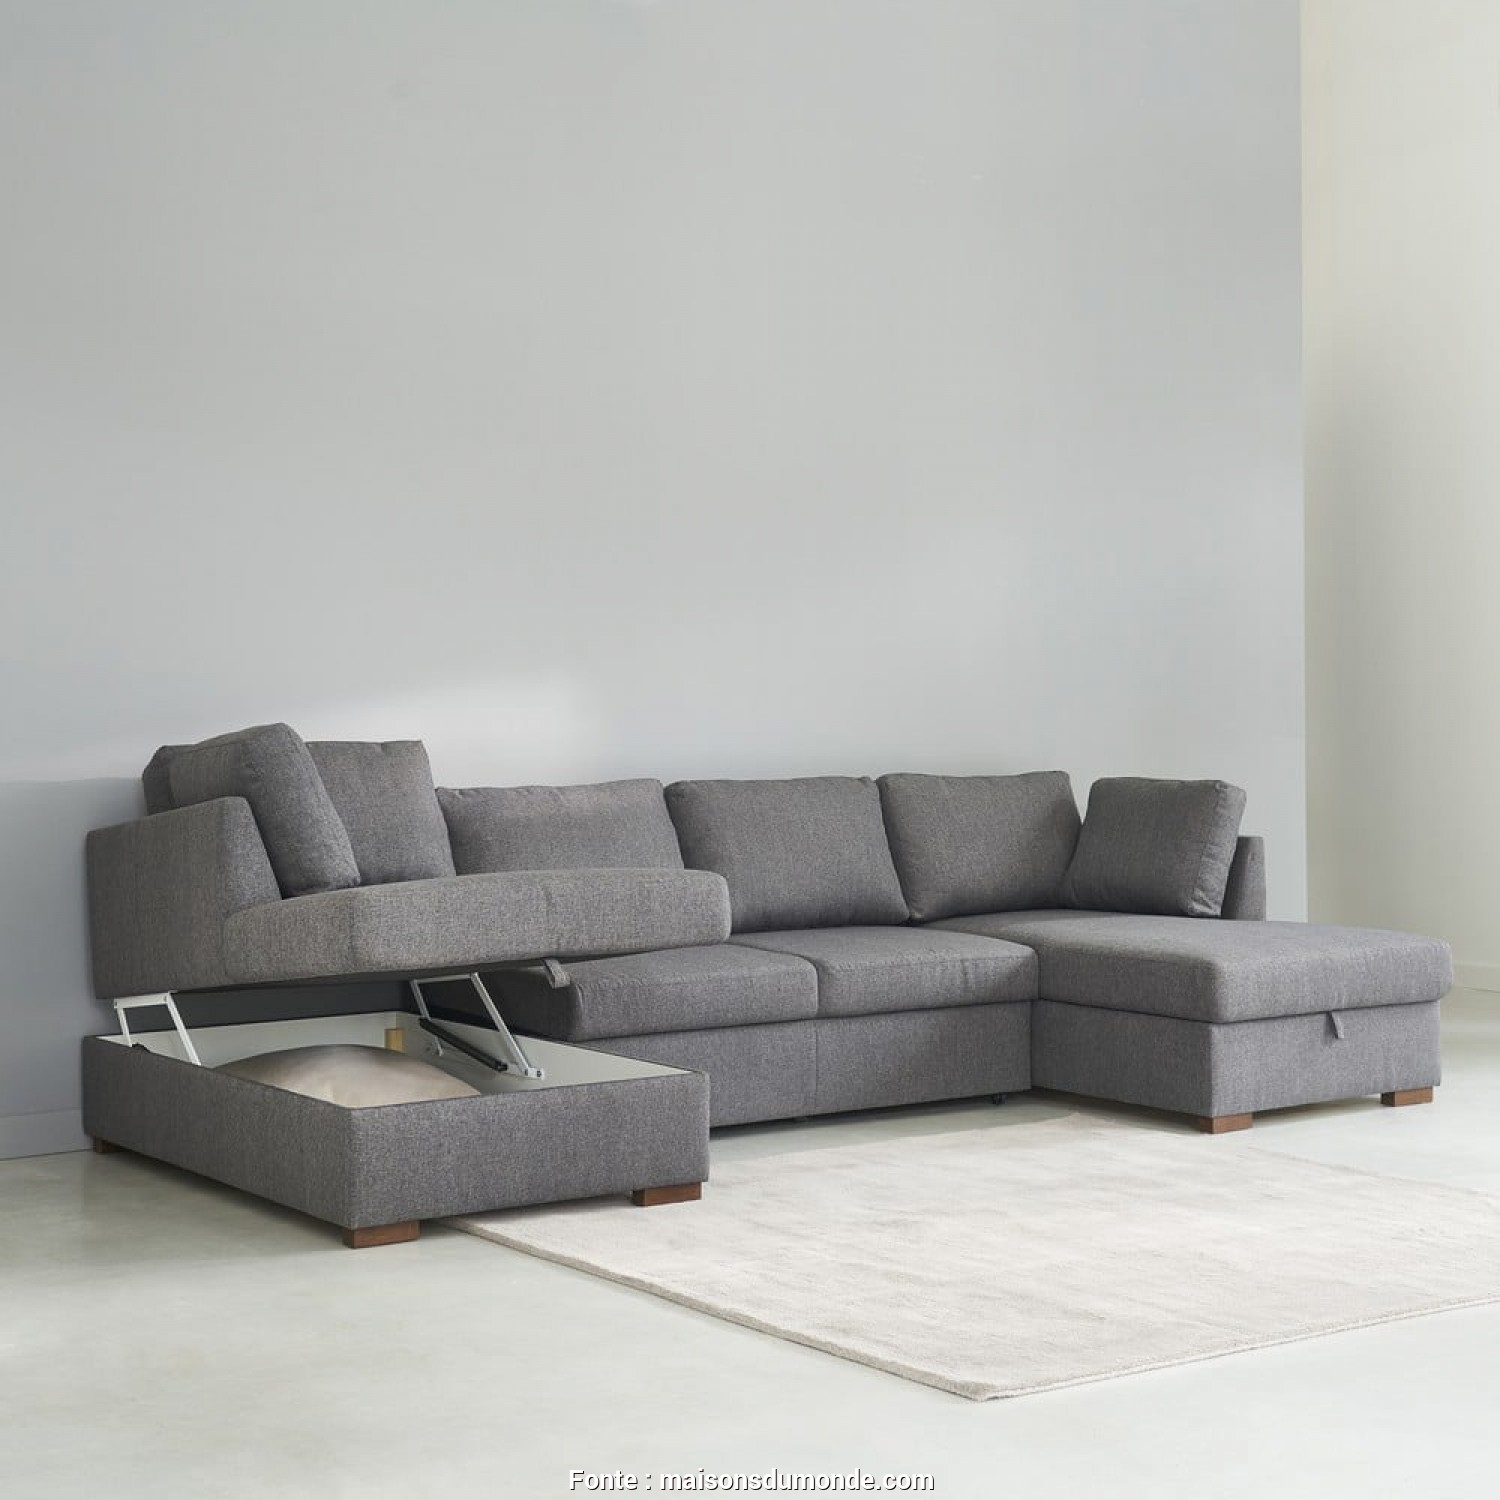 Divano Time Square Maison Du Monde, Ideale Grey 7-Seater U-Shaped Sofa Bed, Maisons Du Monde